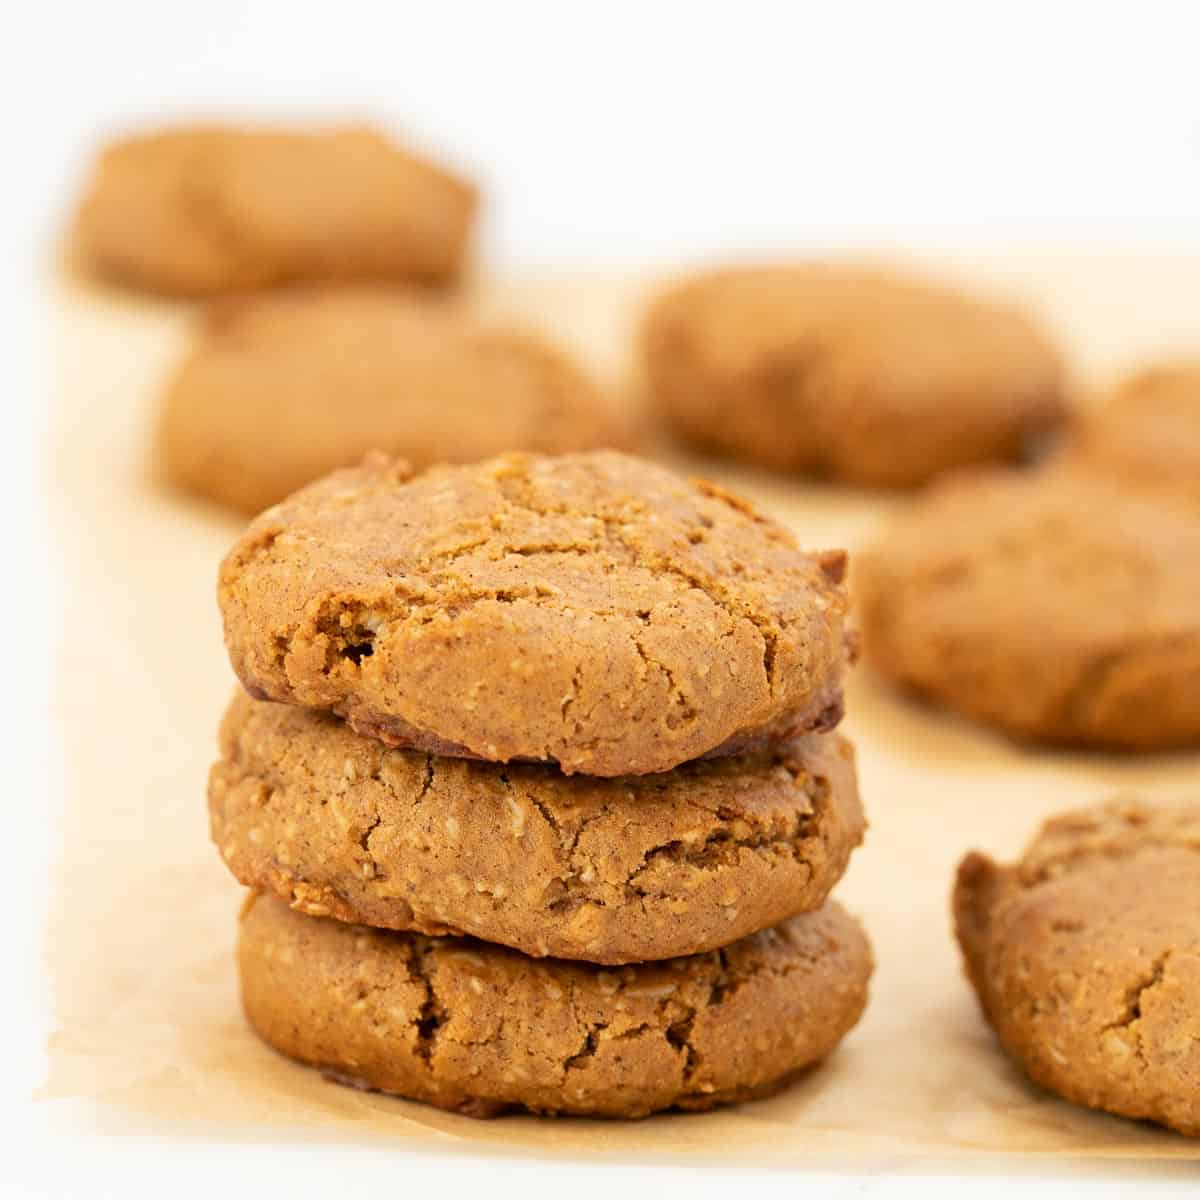 A stack of three cinnamon cookies sitting on parchment paper